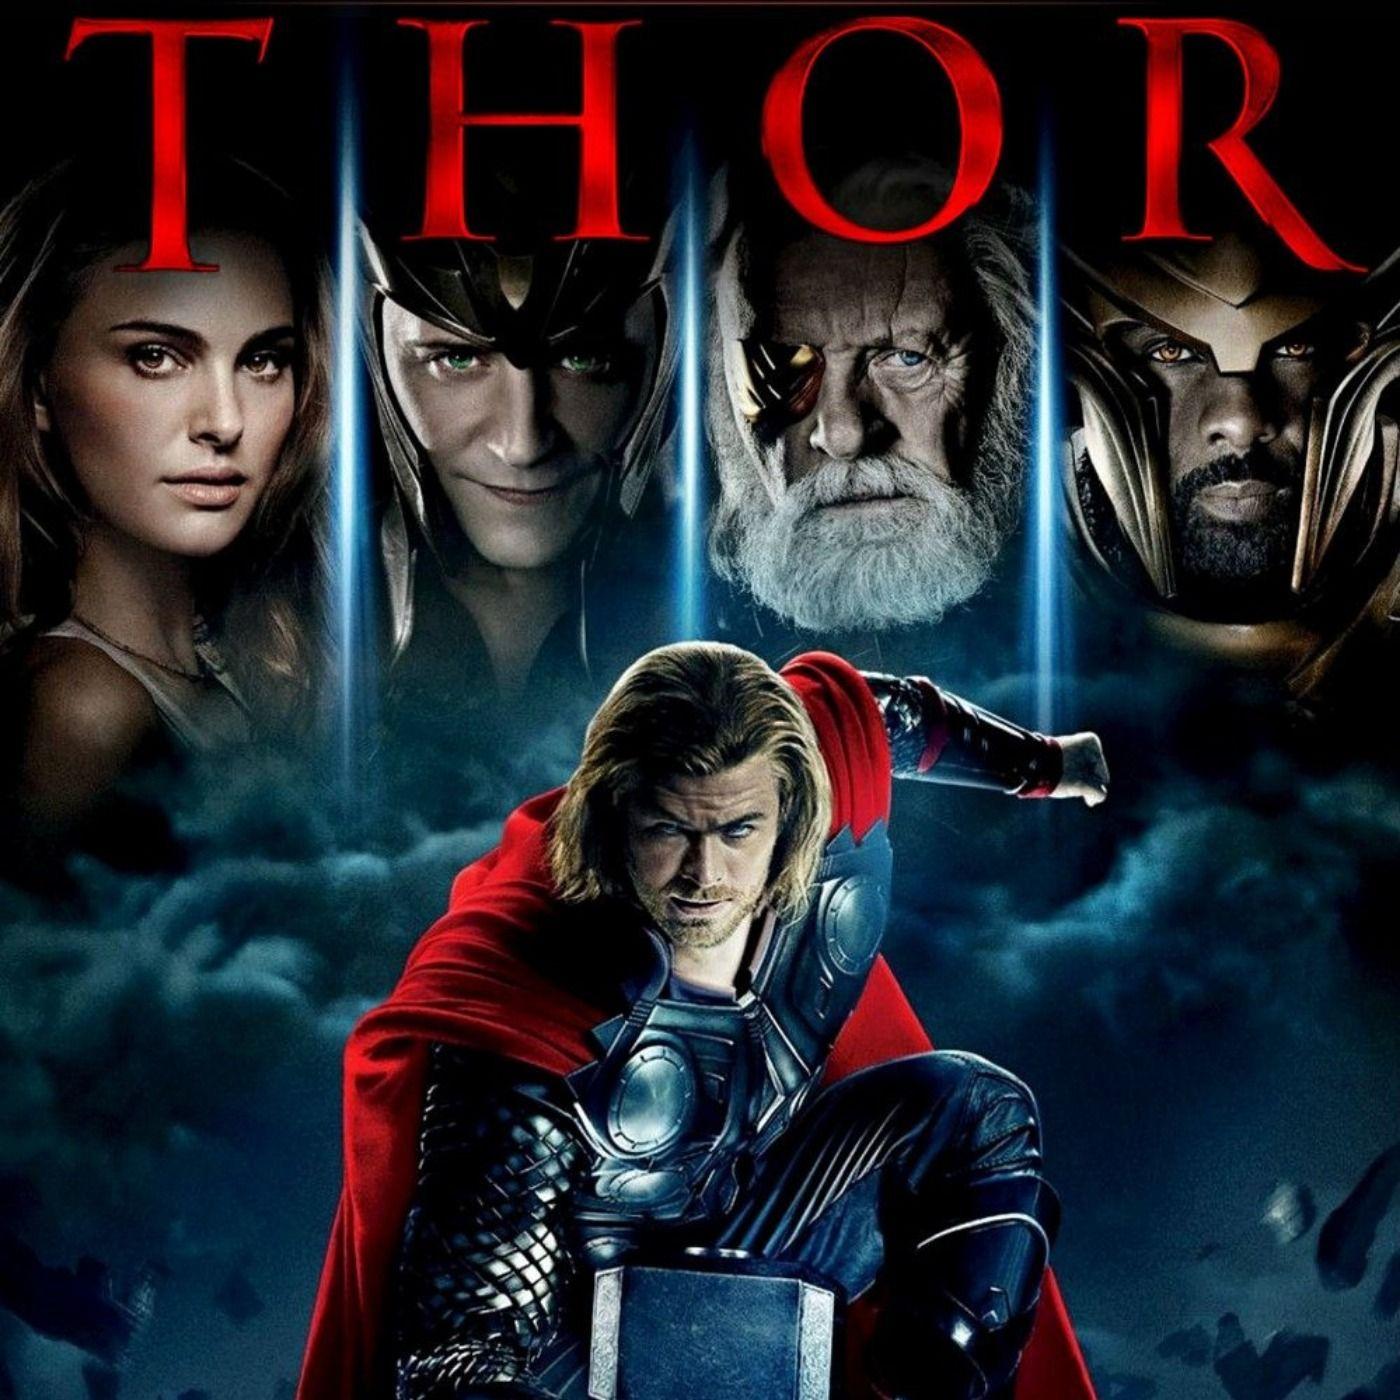 PODCAST CINEMA | CRITIQUE DU FILM THOR 1 | CinéMaRadio